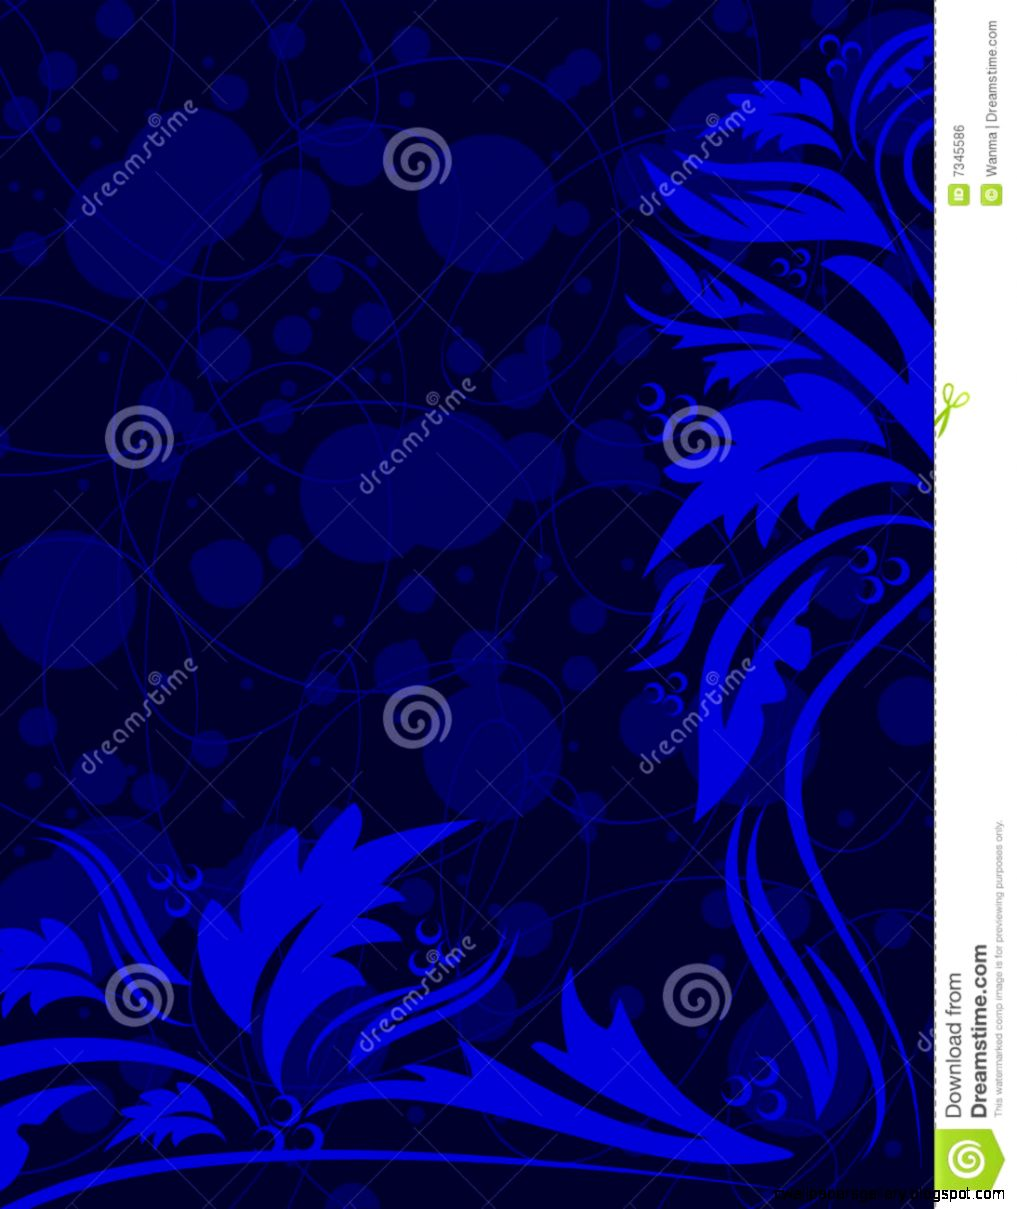 Navy Blue Fl Background Royalty Free Stock Image   Image 7345586